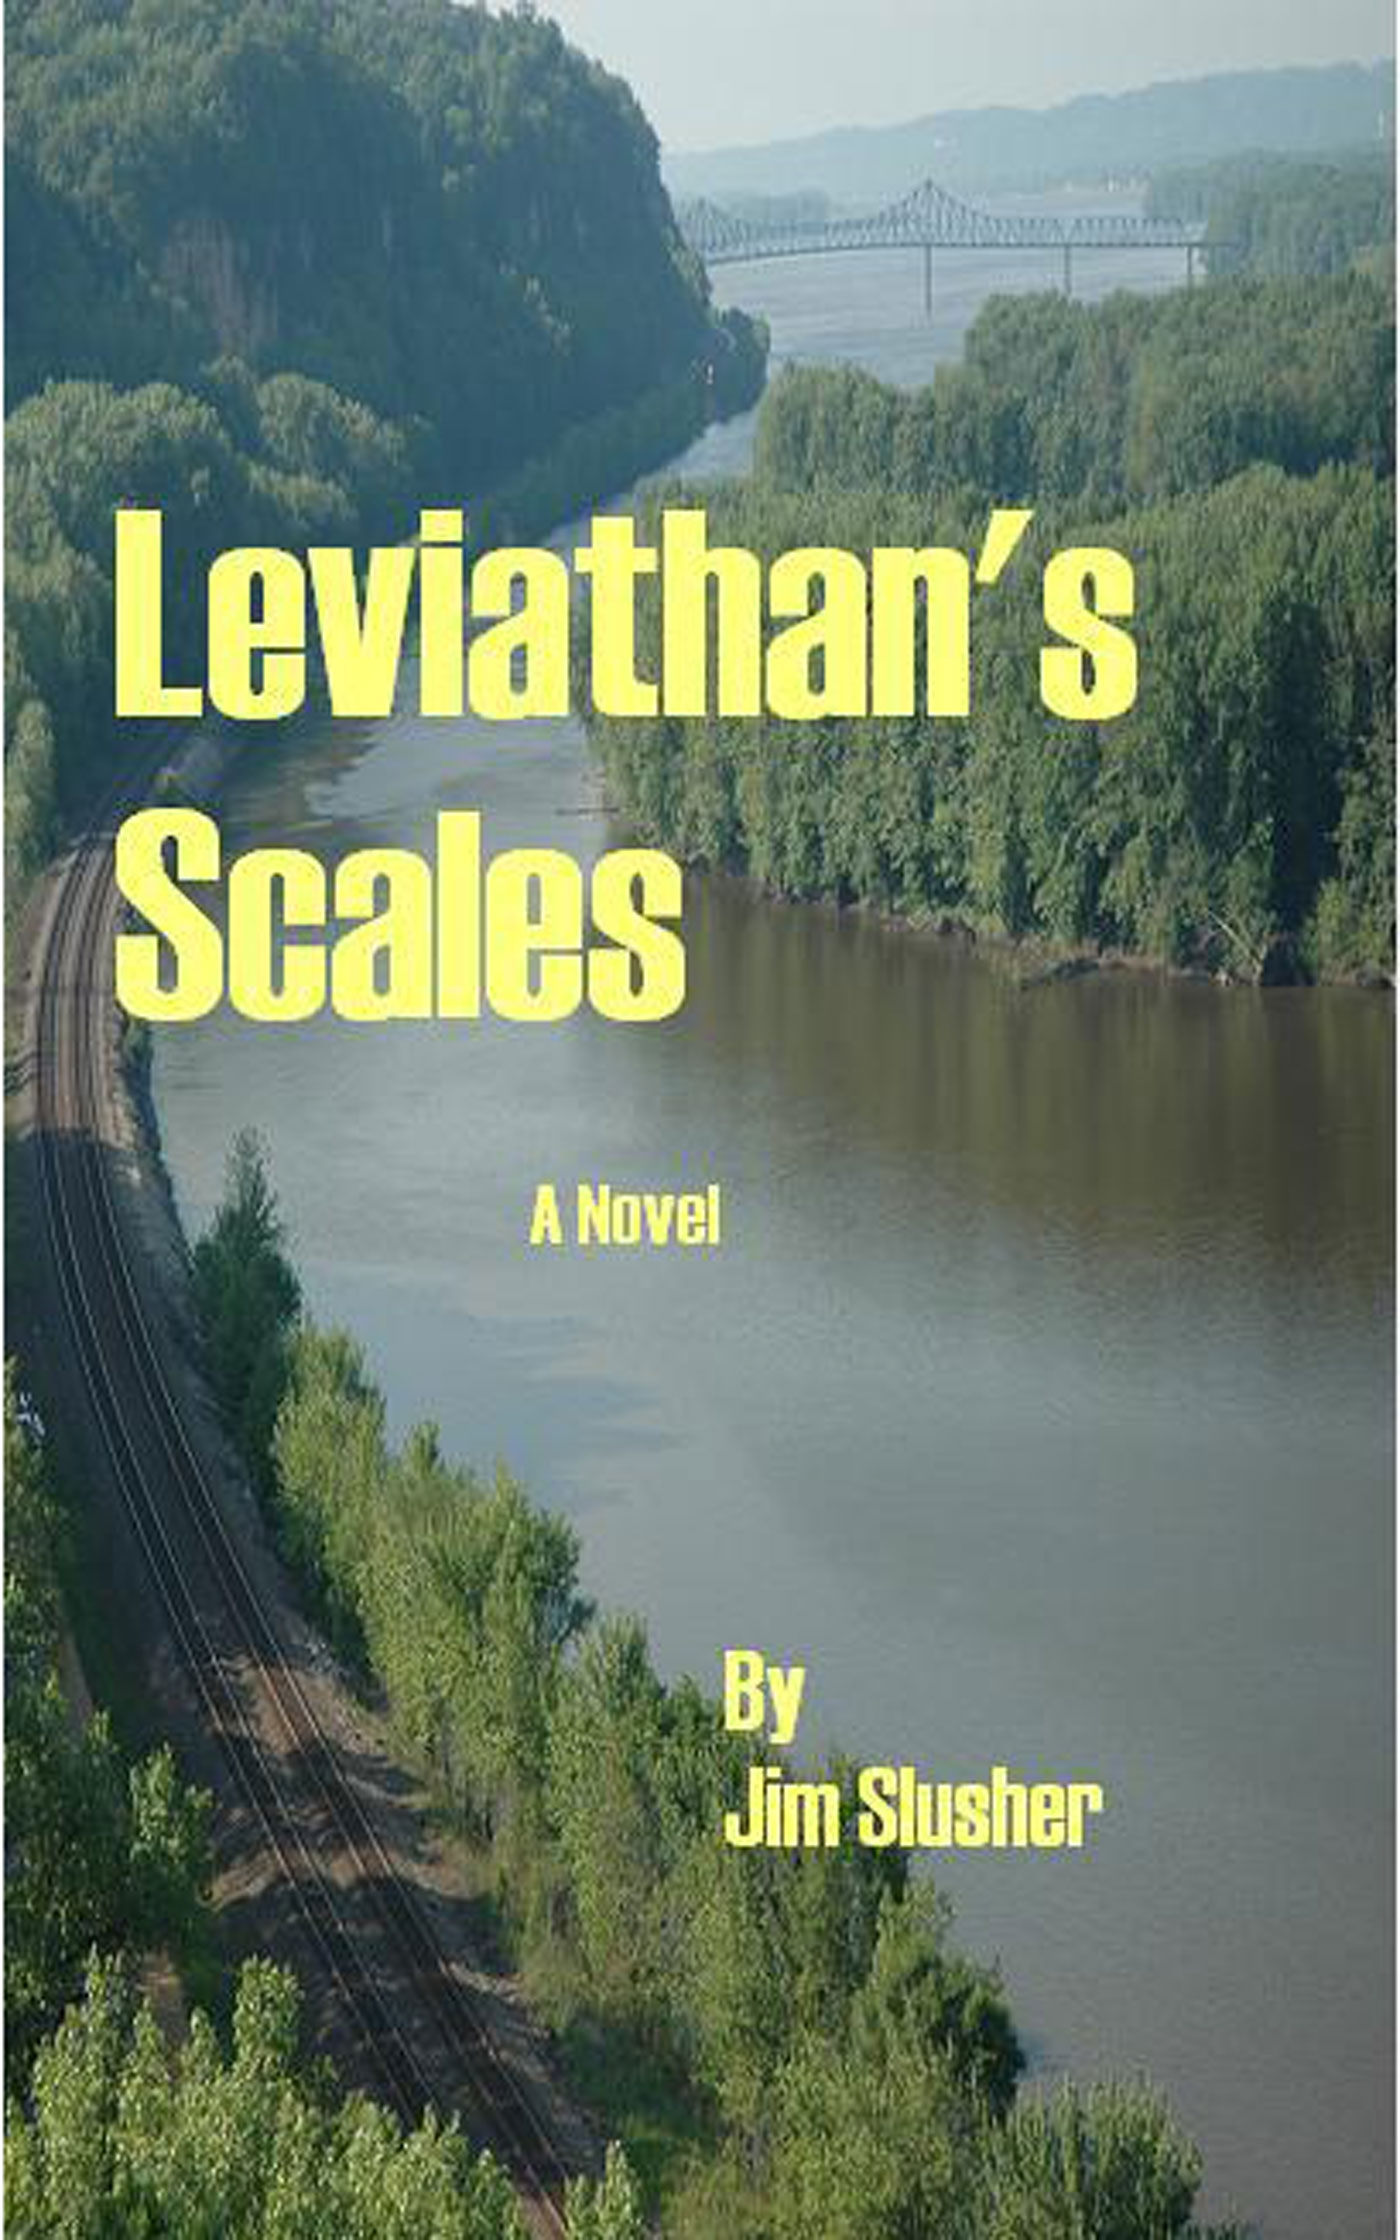 Leviathan's-cover_resized.0813